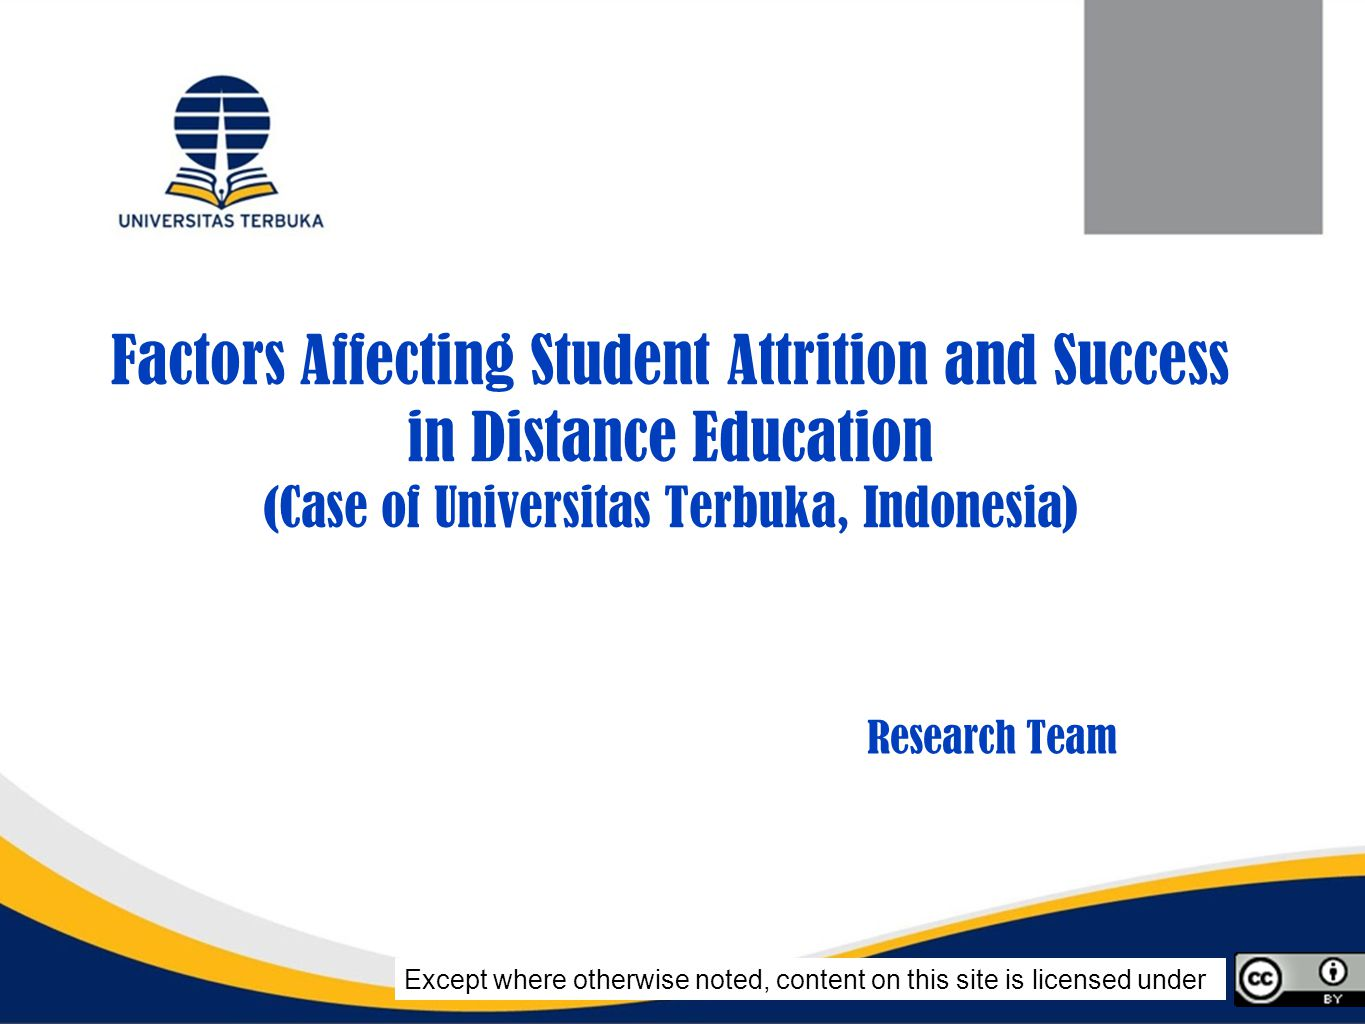 Factors Affecting Student Attrition and Success in Distance Education (Case of Universitas Terbuka, Indonesia) Research Team Except where otherwise noted, content on this site is licensed under